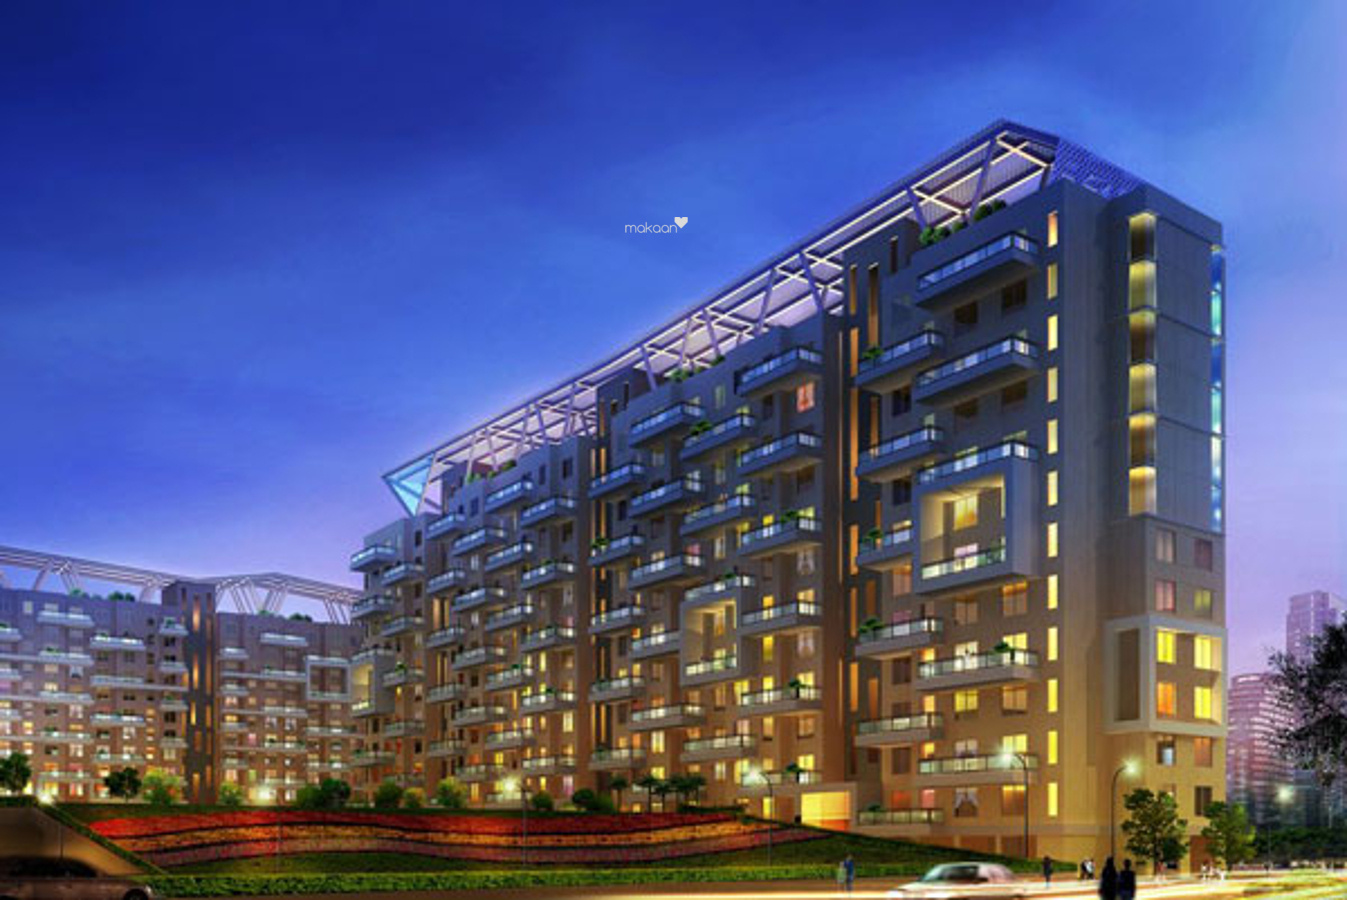 804 sq ft 1BHK 1BHK+1T (804 sq ft) Property By Proptiger In Konark Orchid, Wagholi